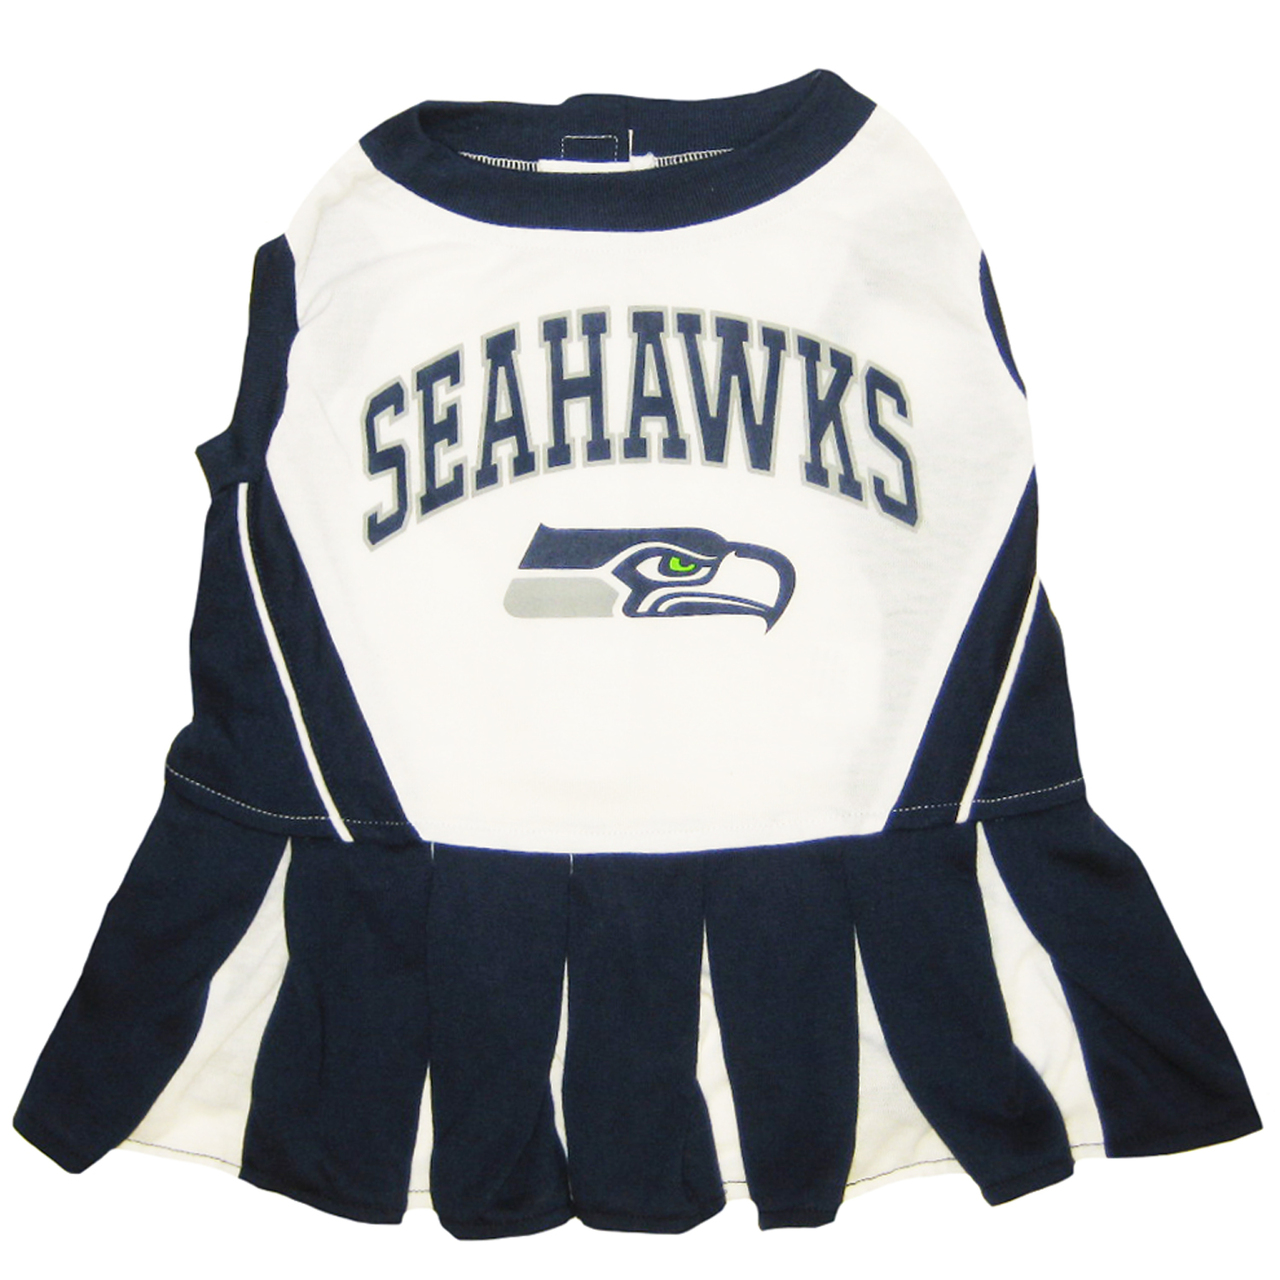 Hot Dog Seattle Seahawks NFL Football Pet Cheerleader Outfit